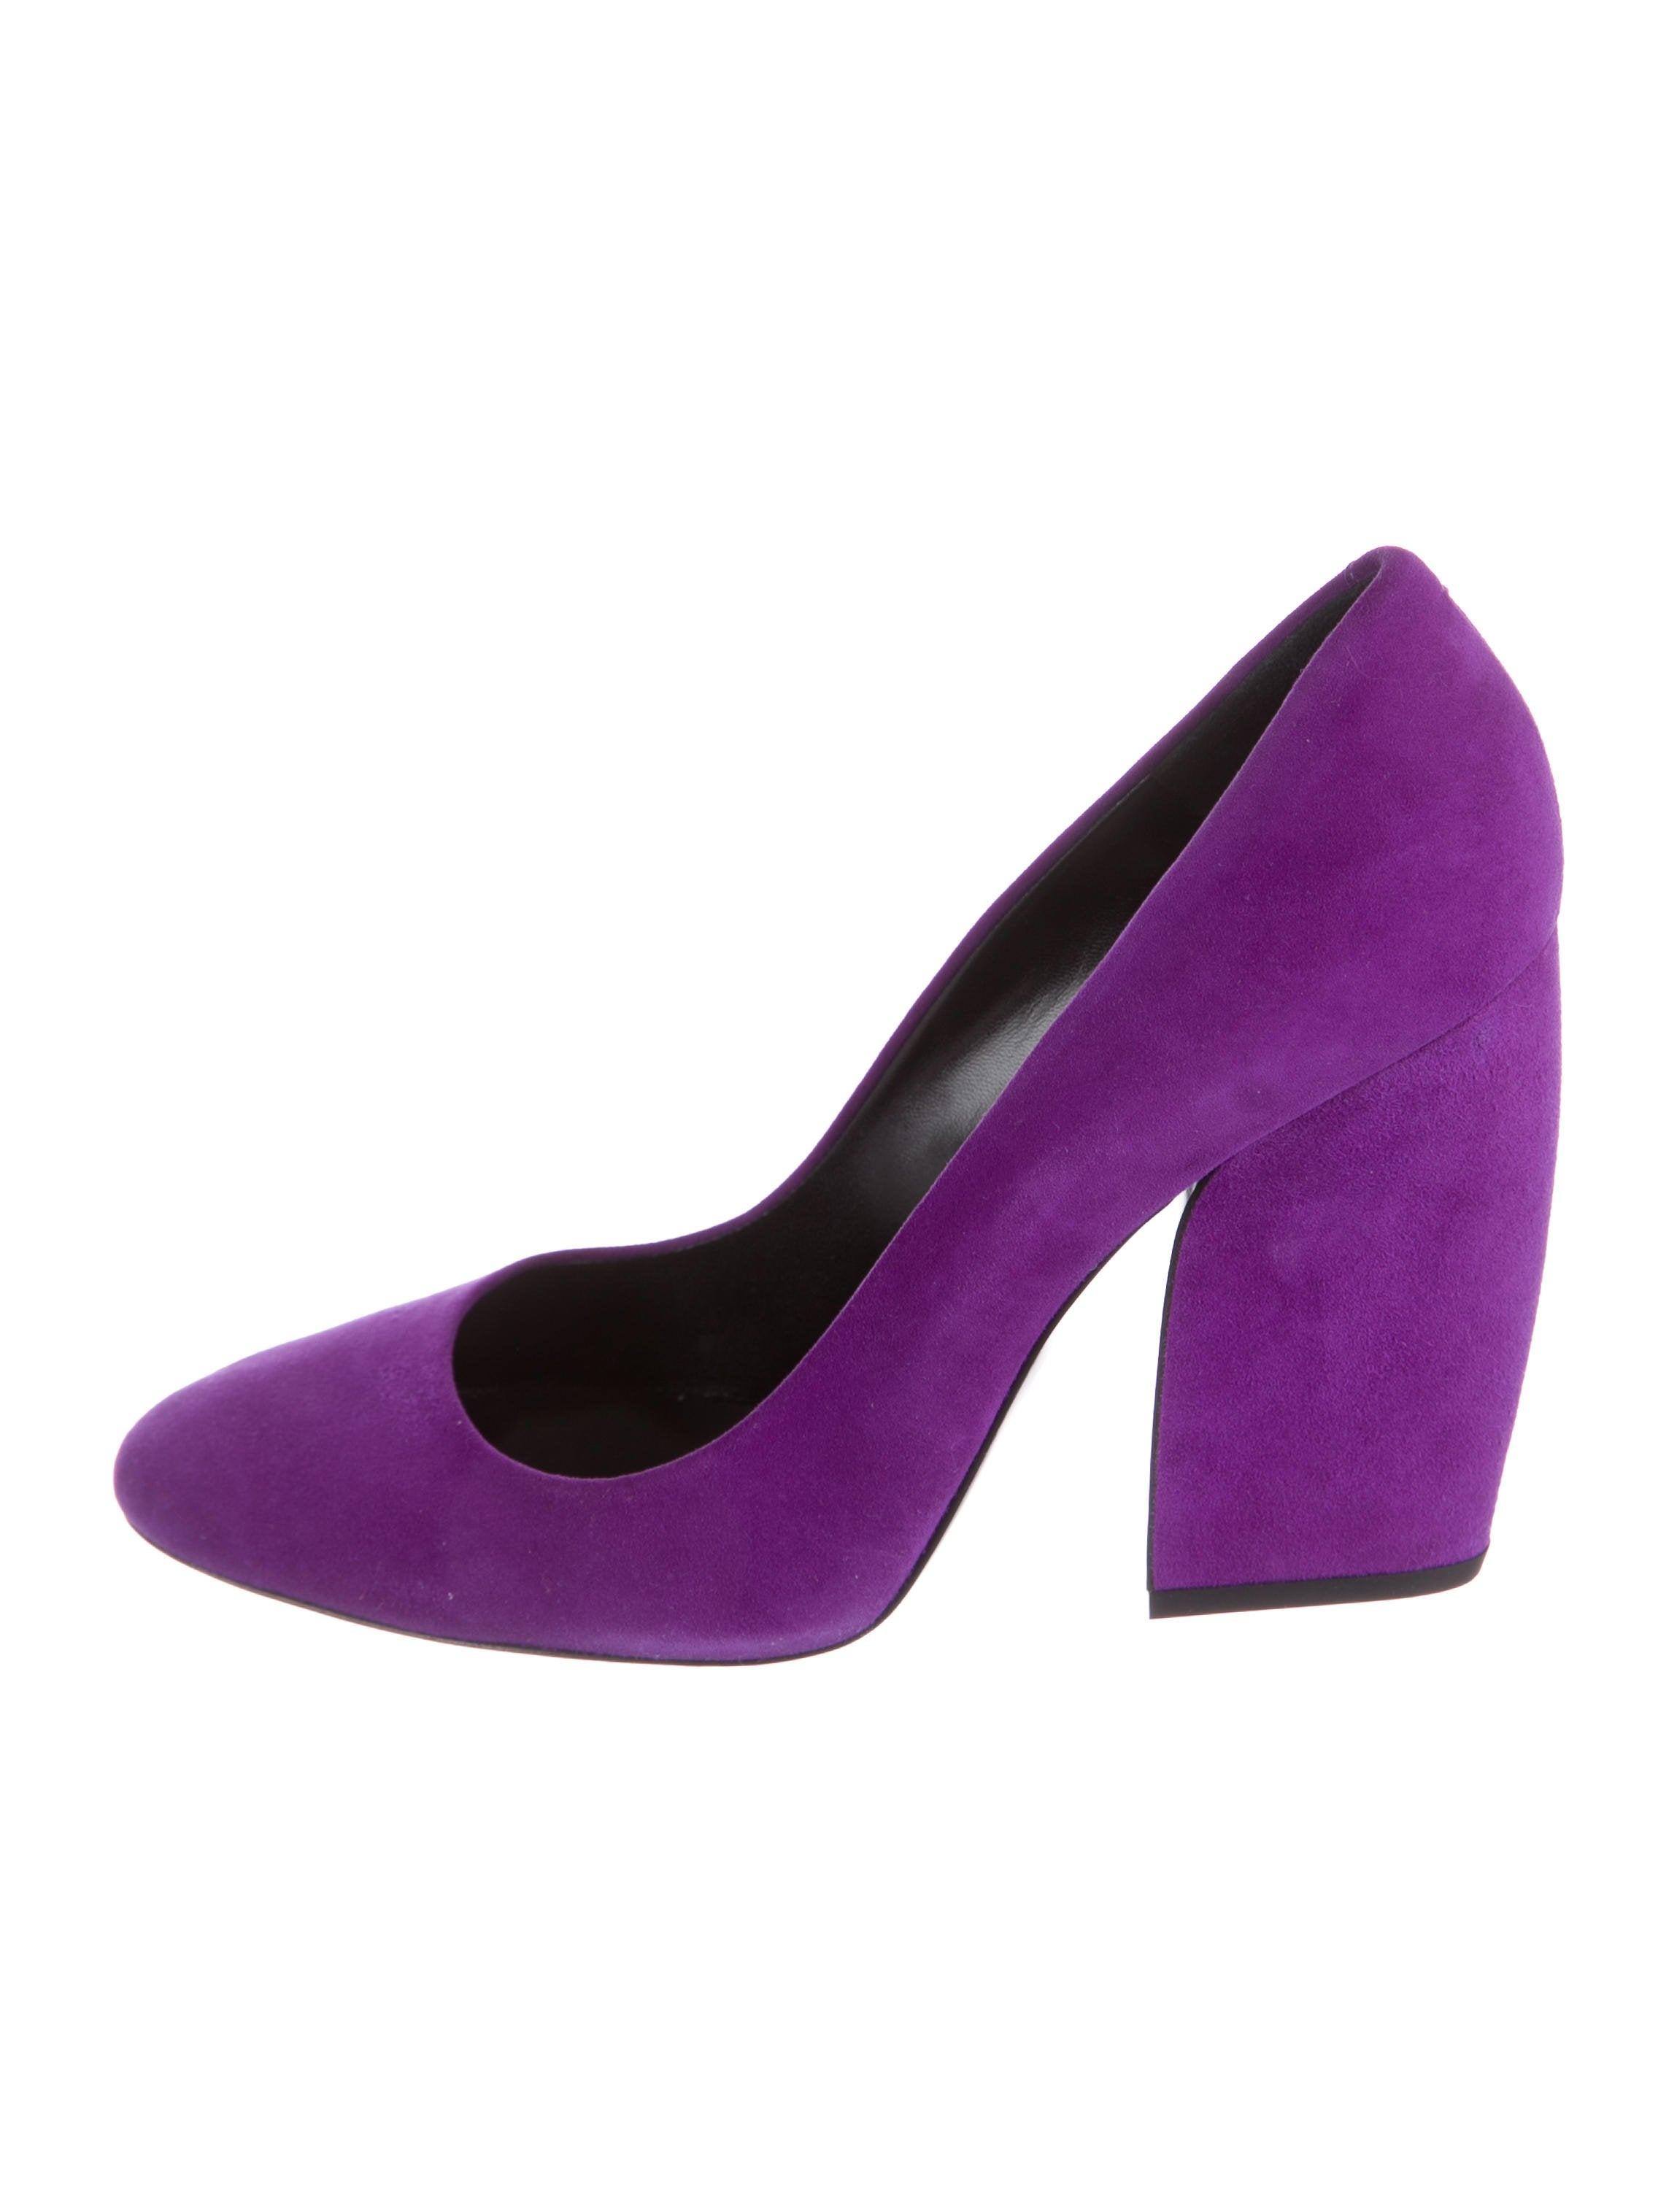 cheap sale footlocker buy cheap prices Pierre Hardy Suede Round-Toe Pumps official for sale ashhkyXn